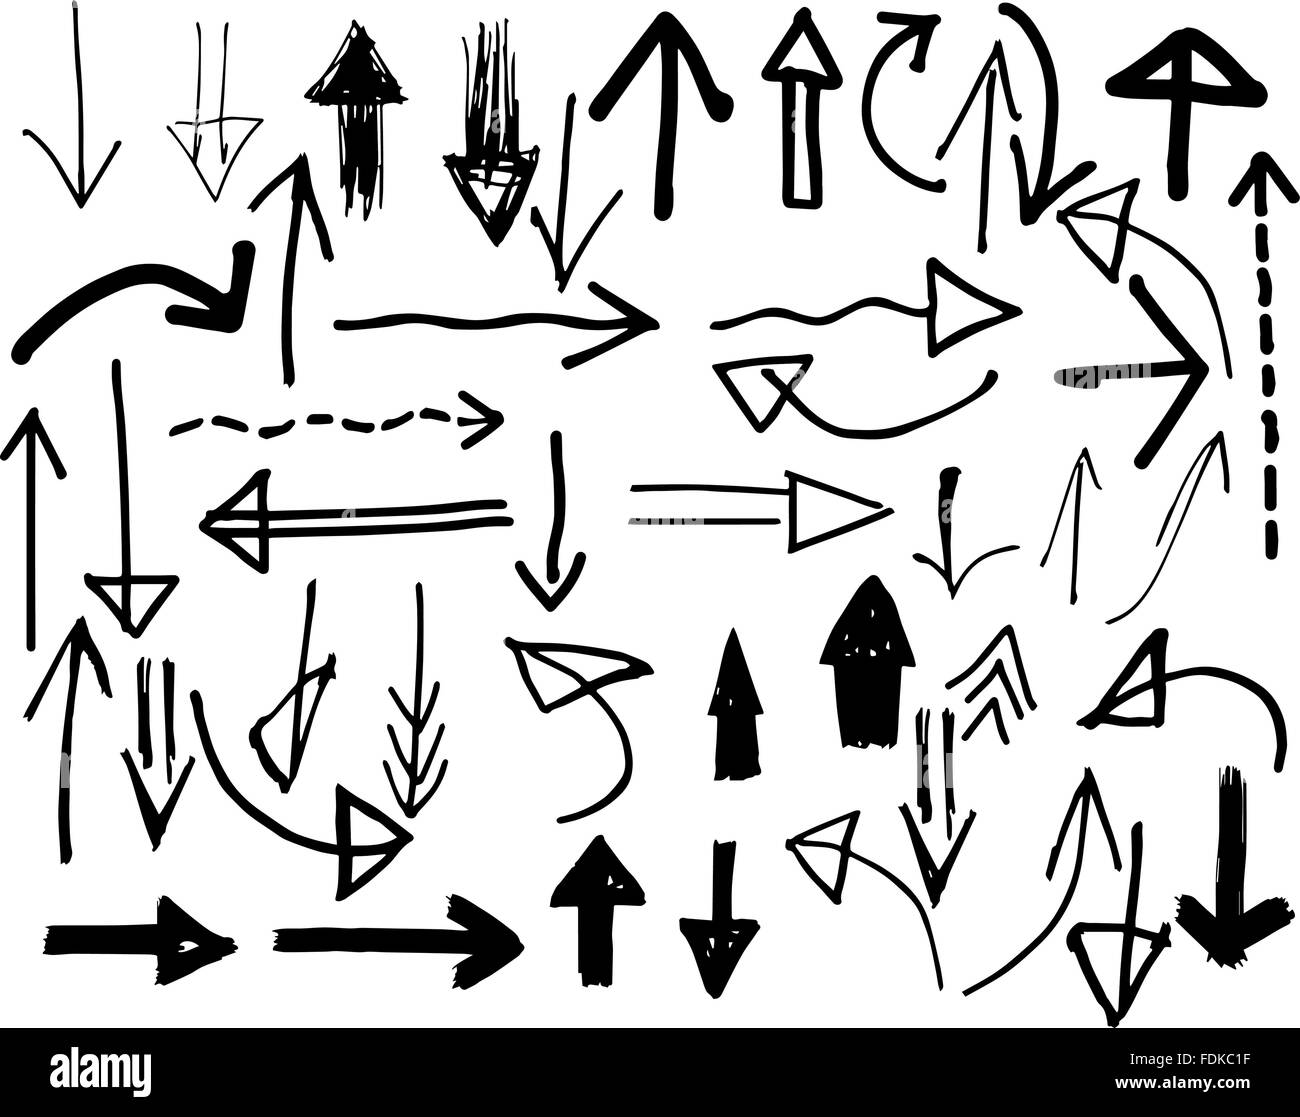 Hand-drawn vector arrows in different styles - Stock Image